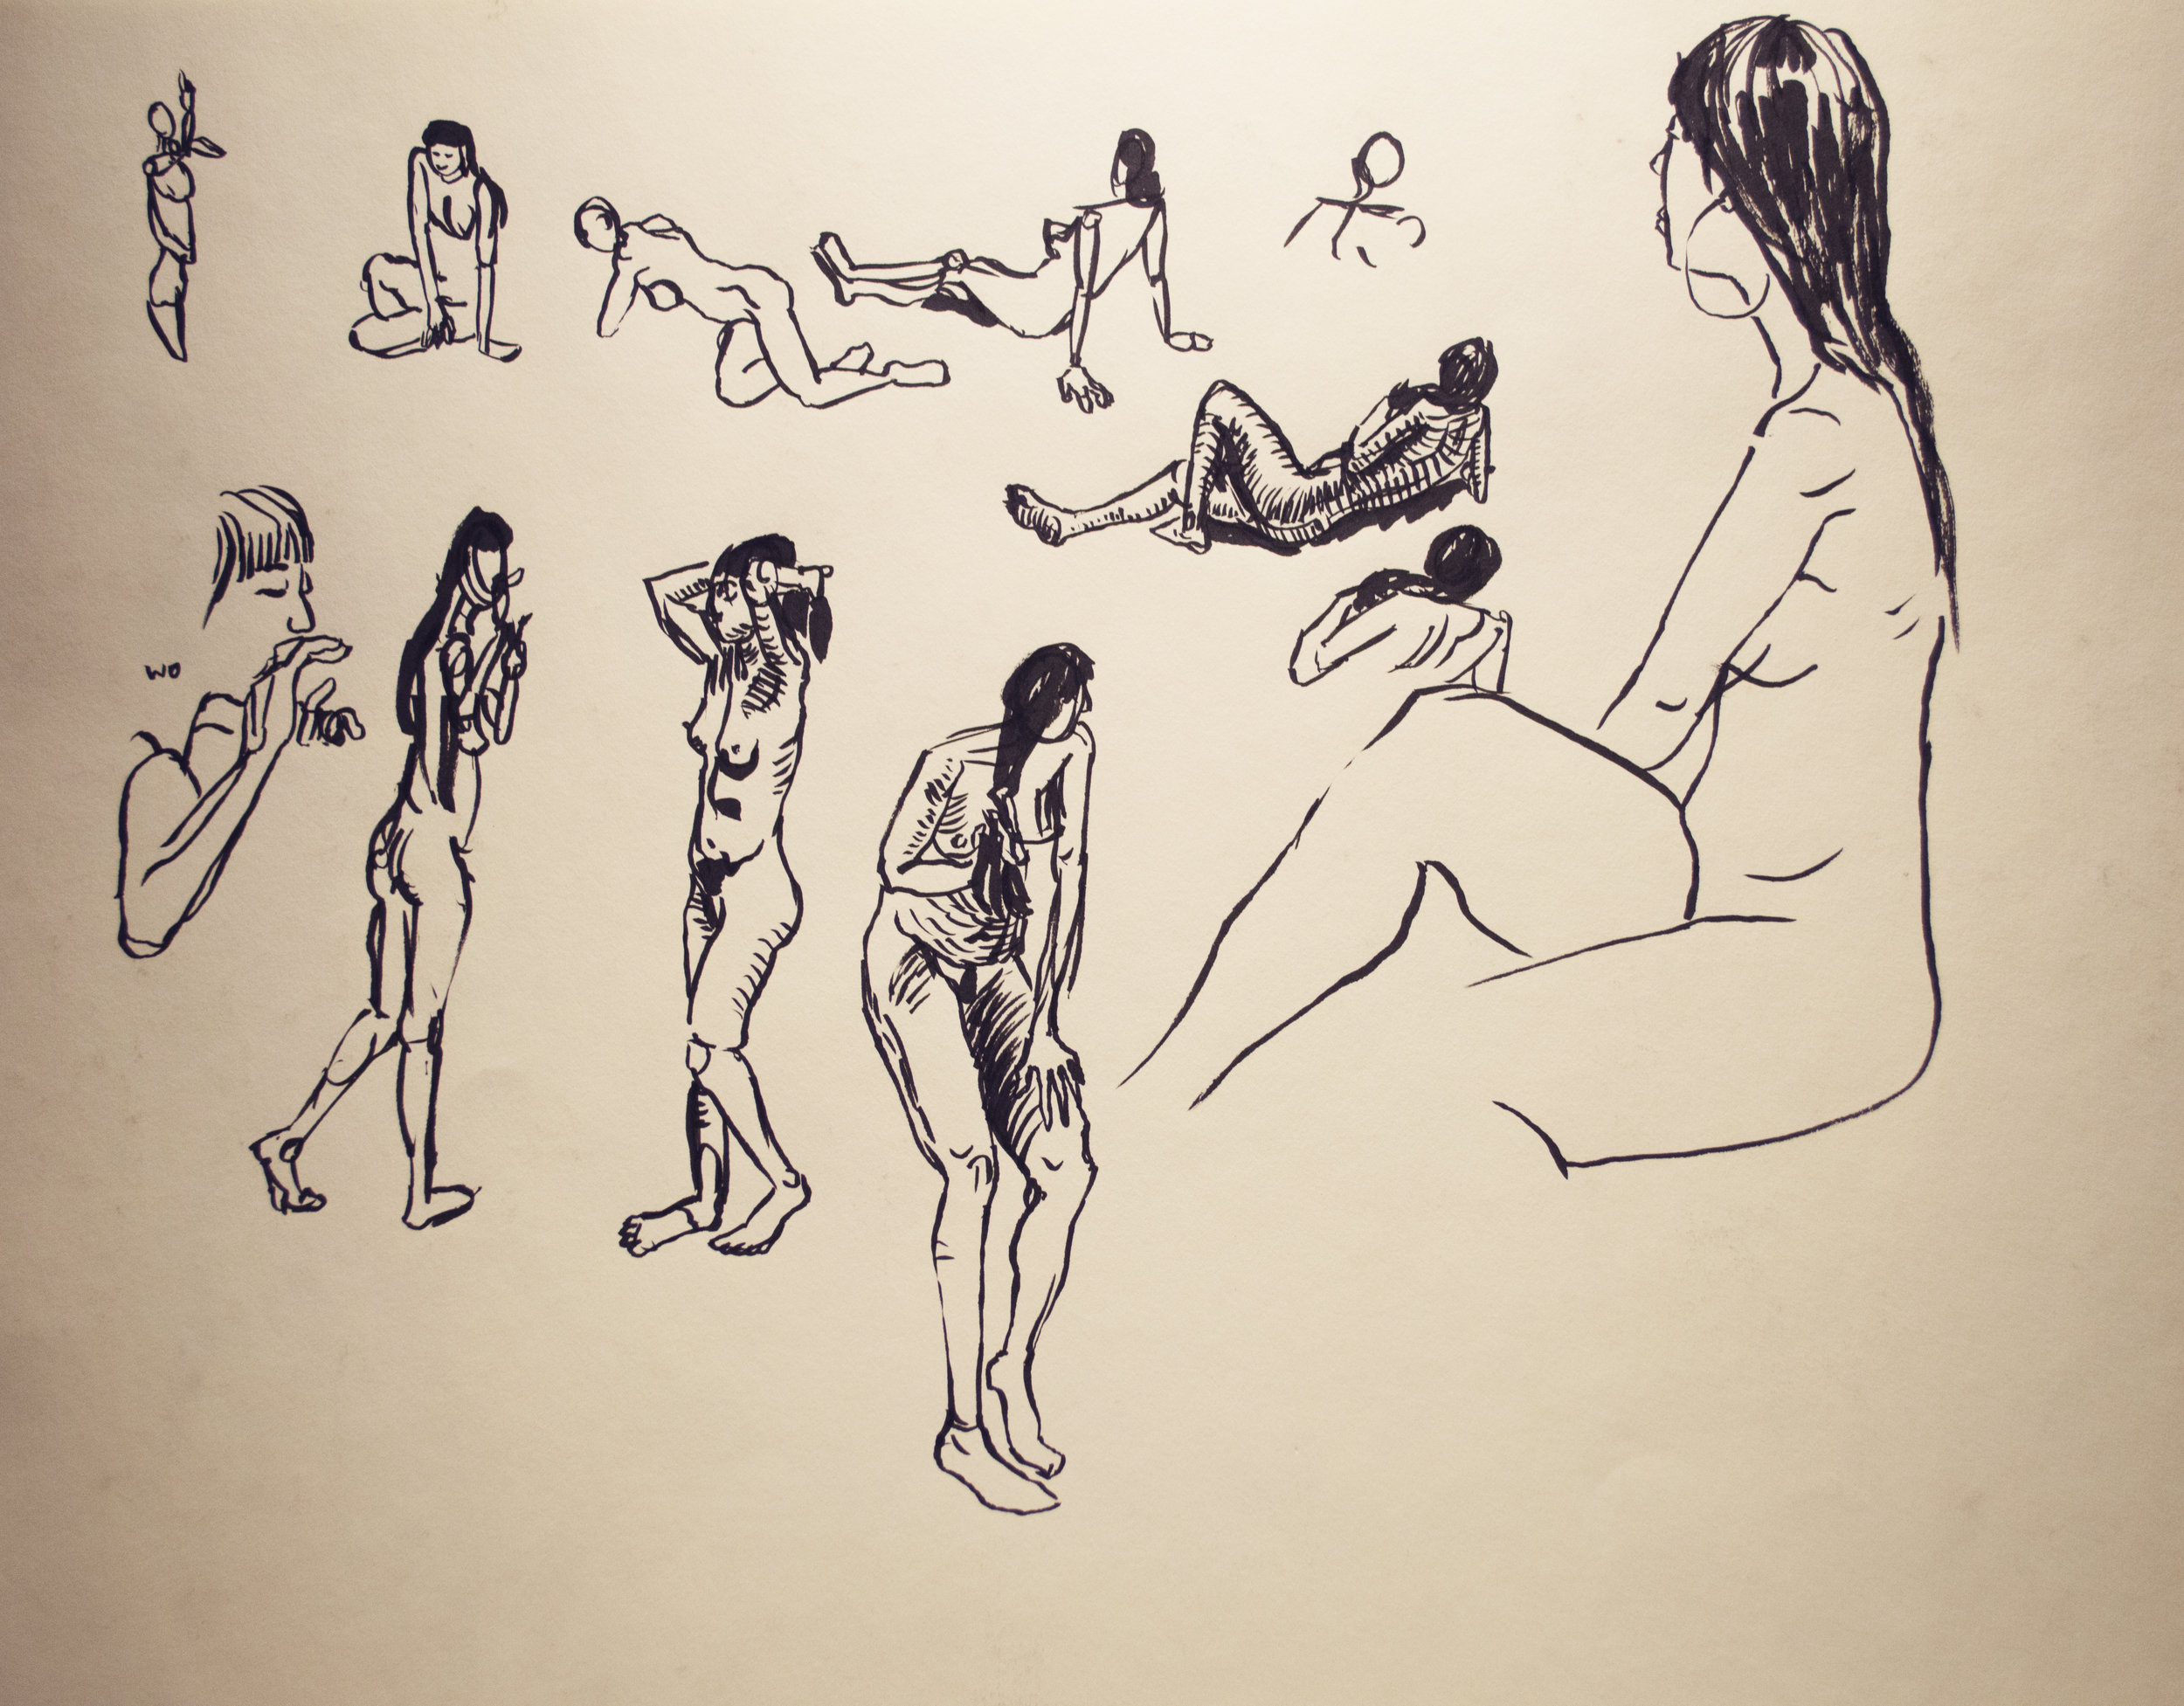 Werner_Levi_Lifedrawing5.jpg